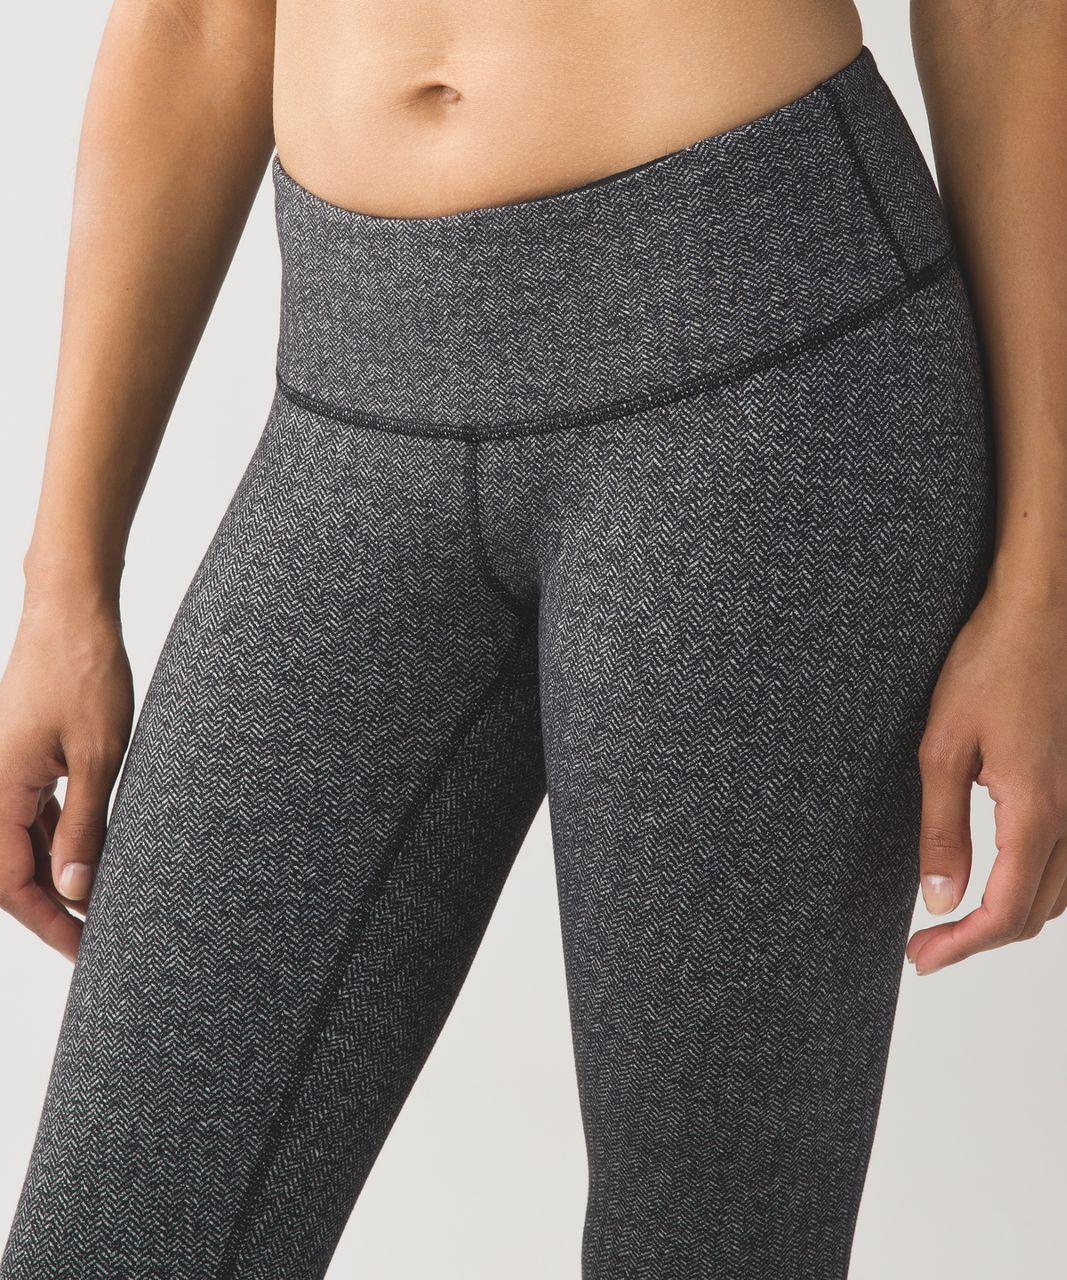 Lululemon Wunder Under Pant III - Heathered Herringbone Heathered Black Black